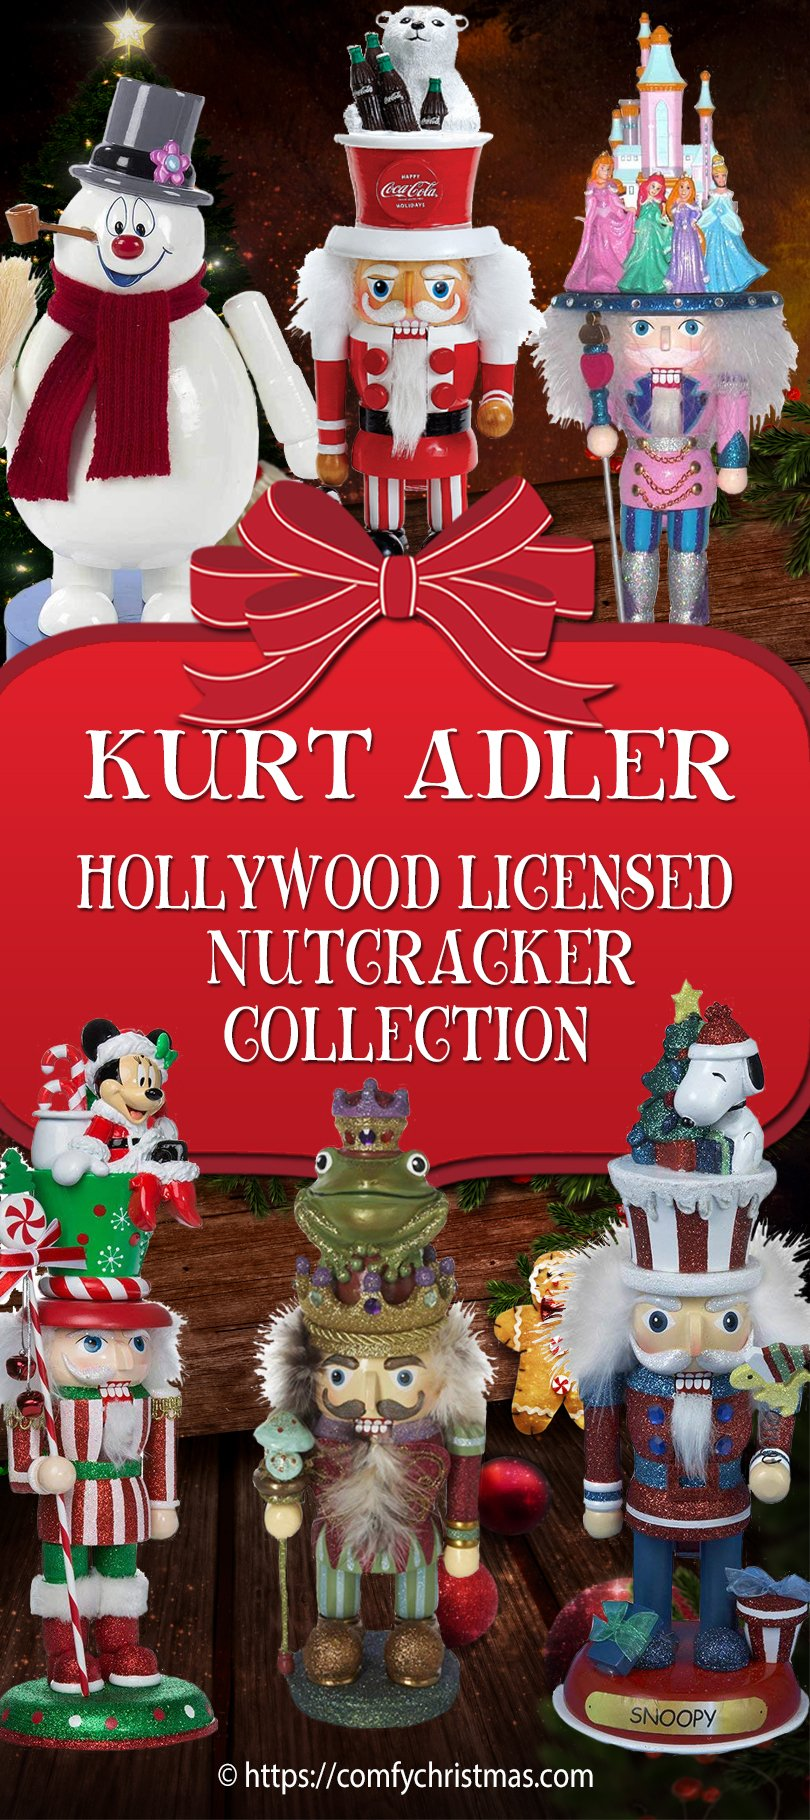 Kurt Adler Hollywood Licensed Nutcrackers